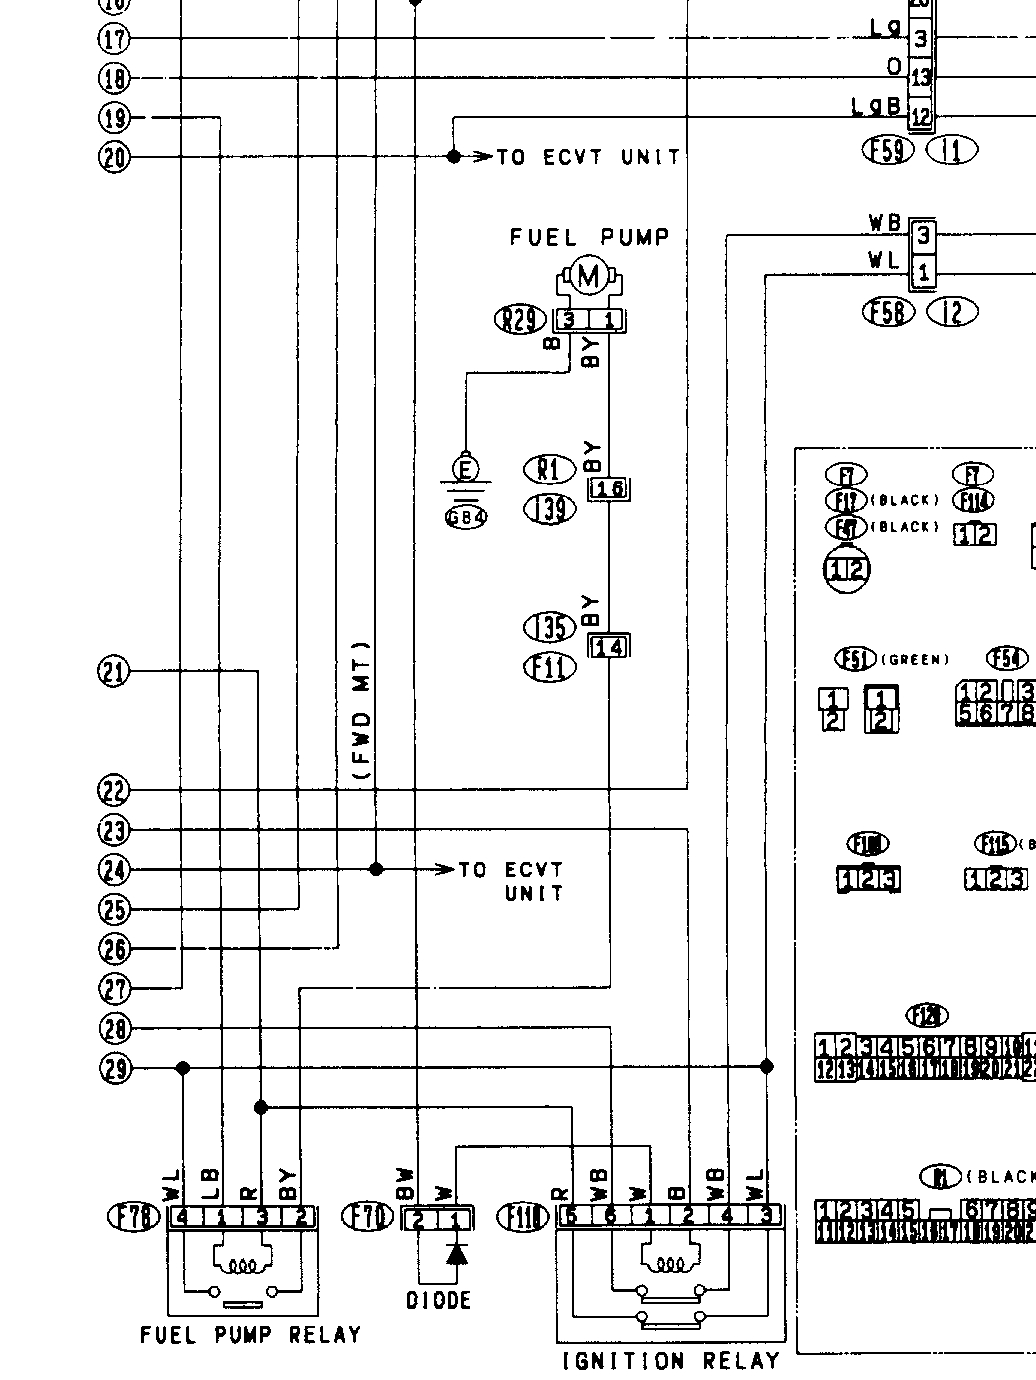 1994 Subaru Justy Wiring Diagram Another Diagrams 95 Impreza Pdf With Outback 1990